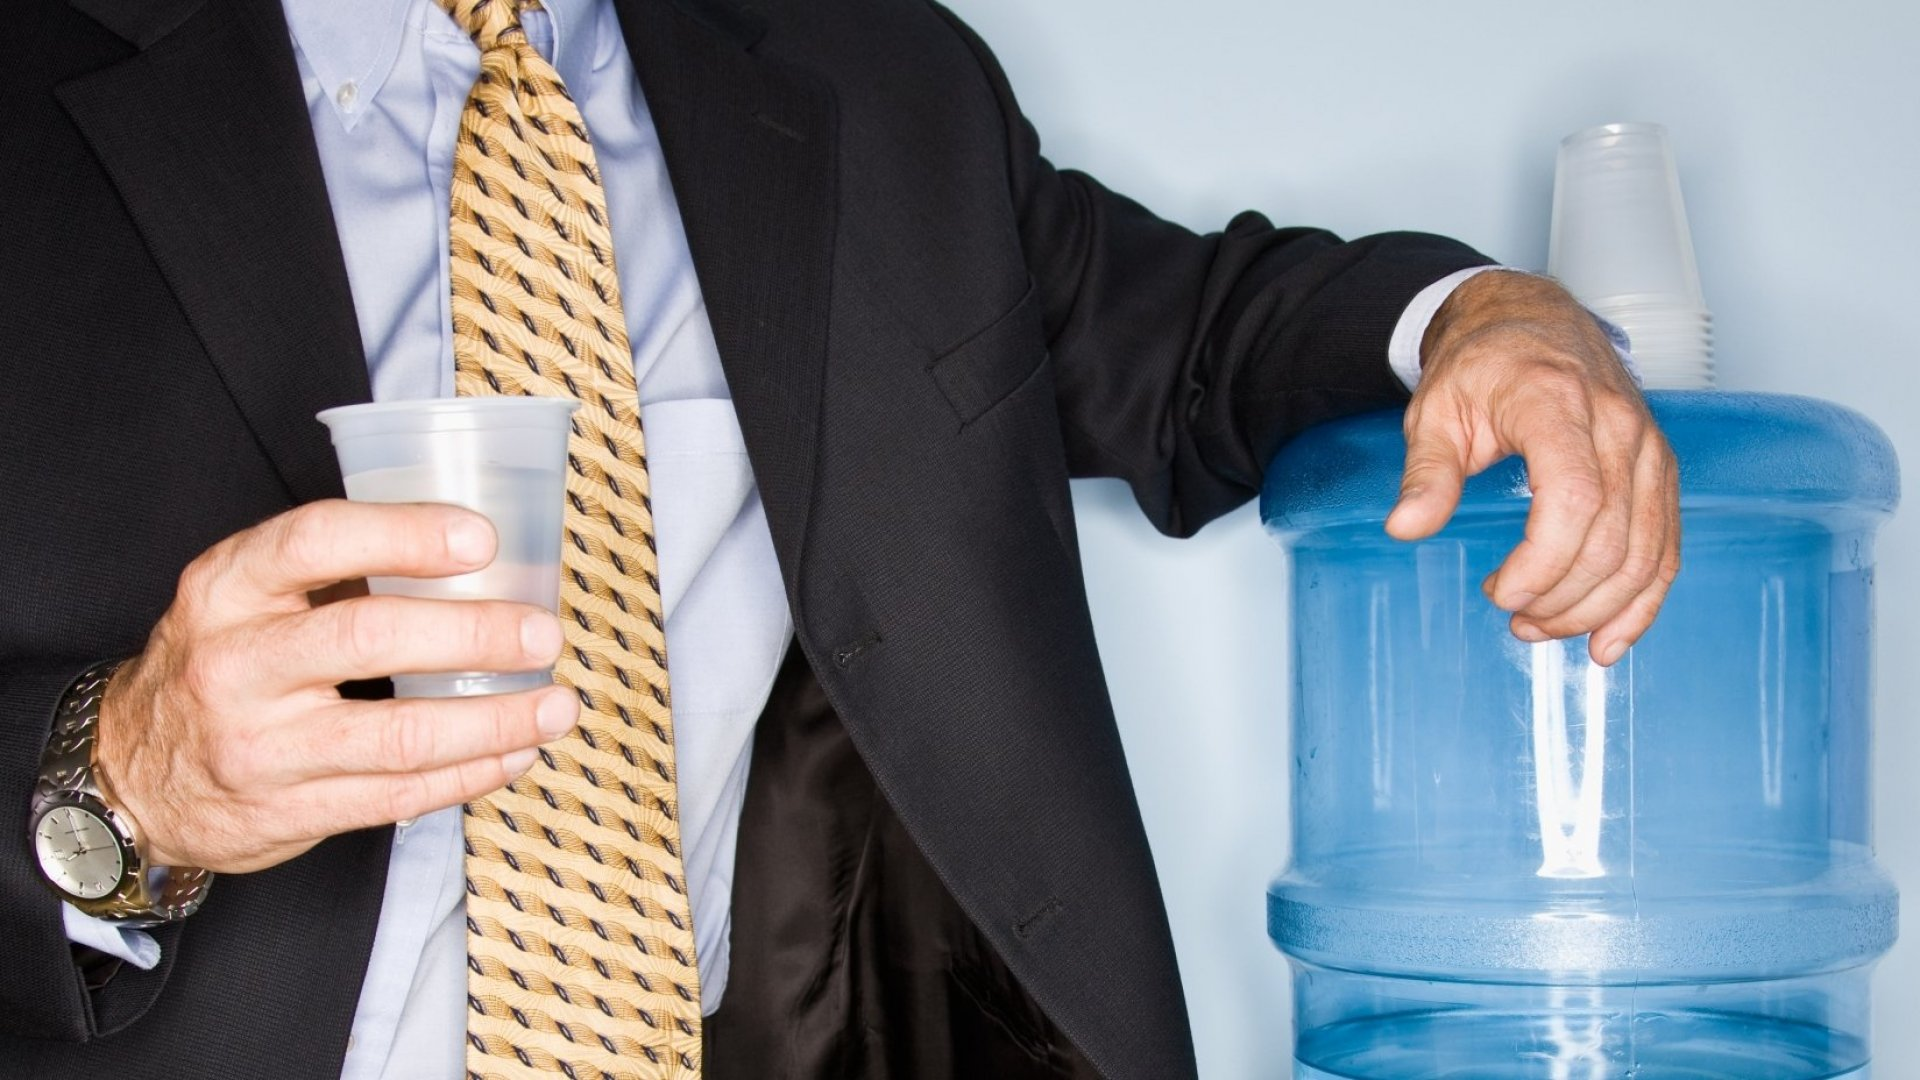 7 Toxic Behaviors Sure to Destroy Your Company